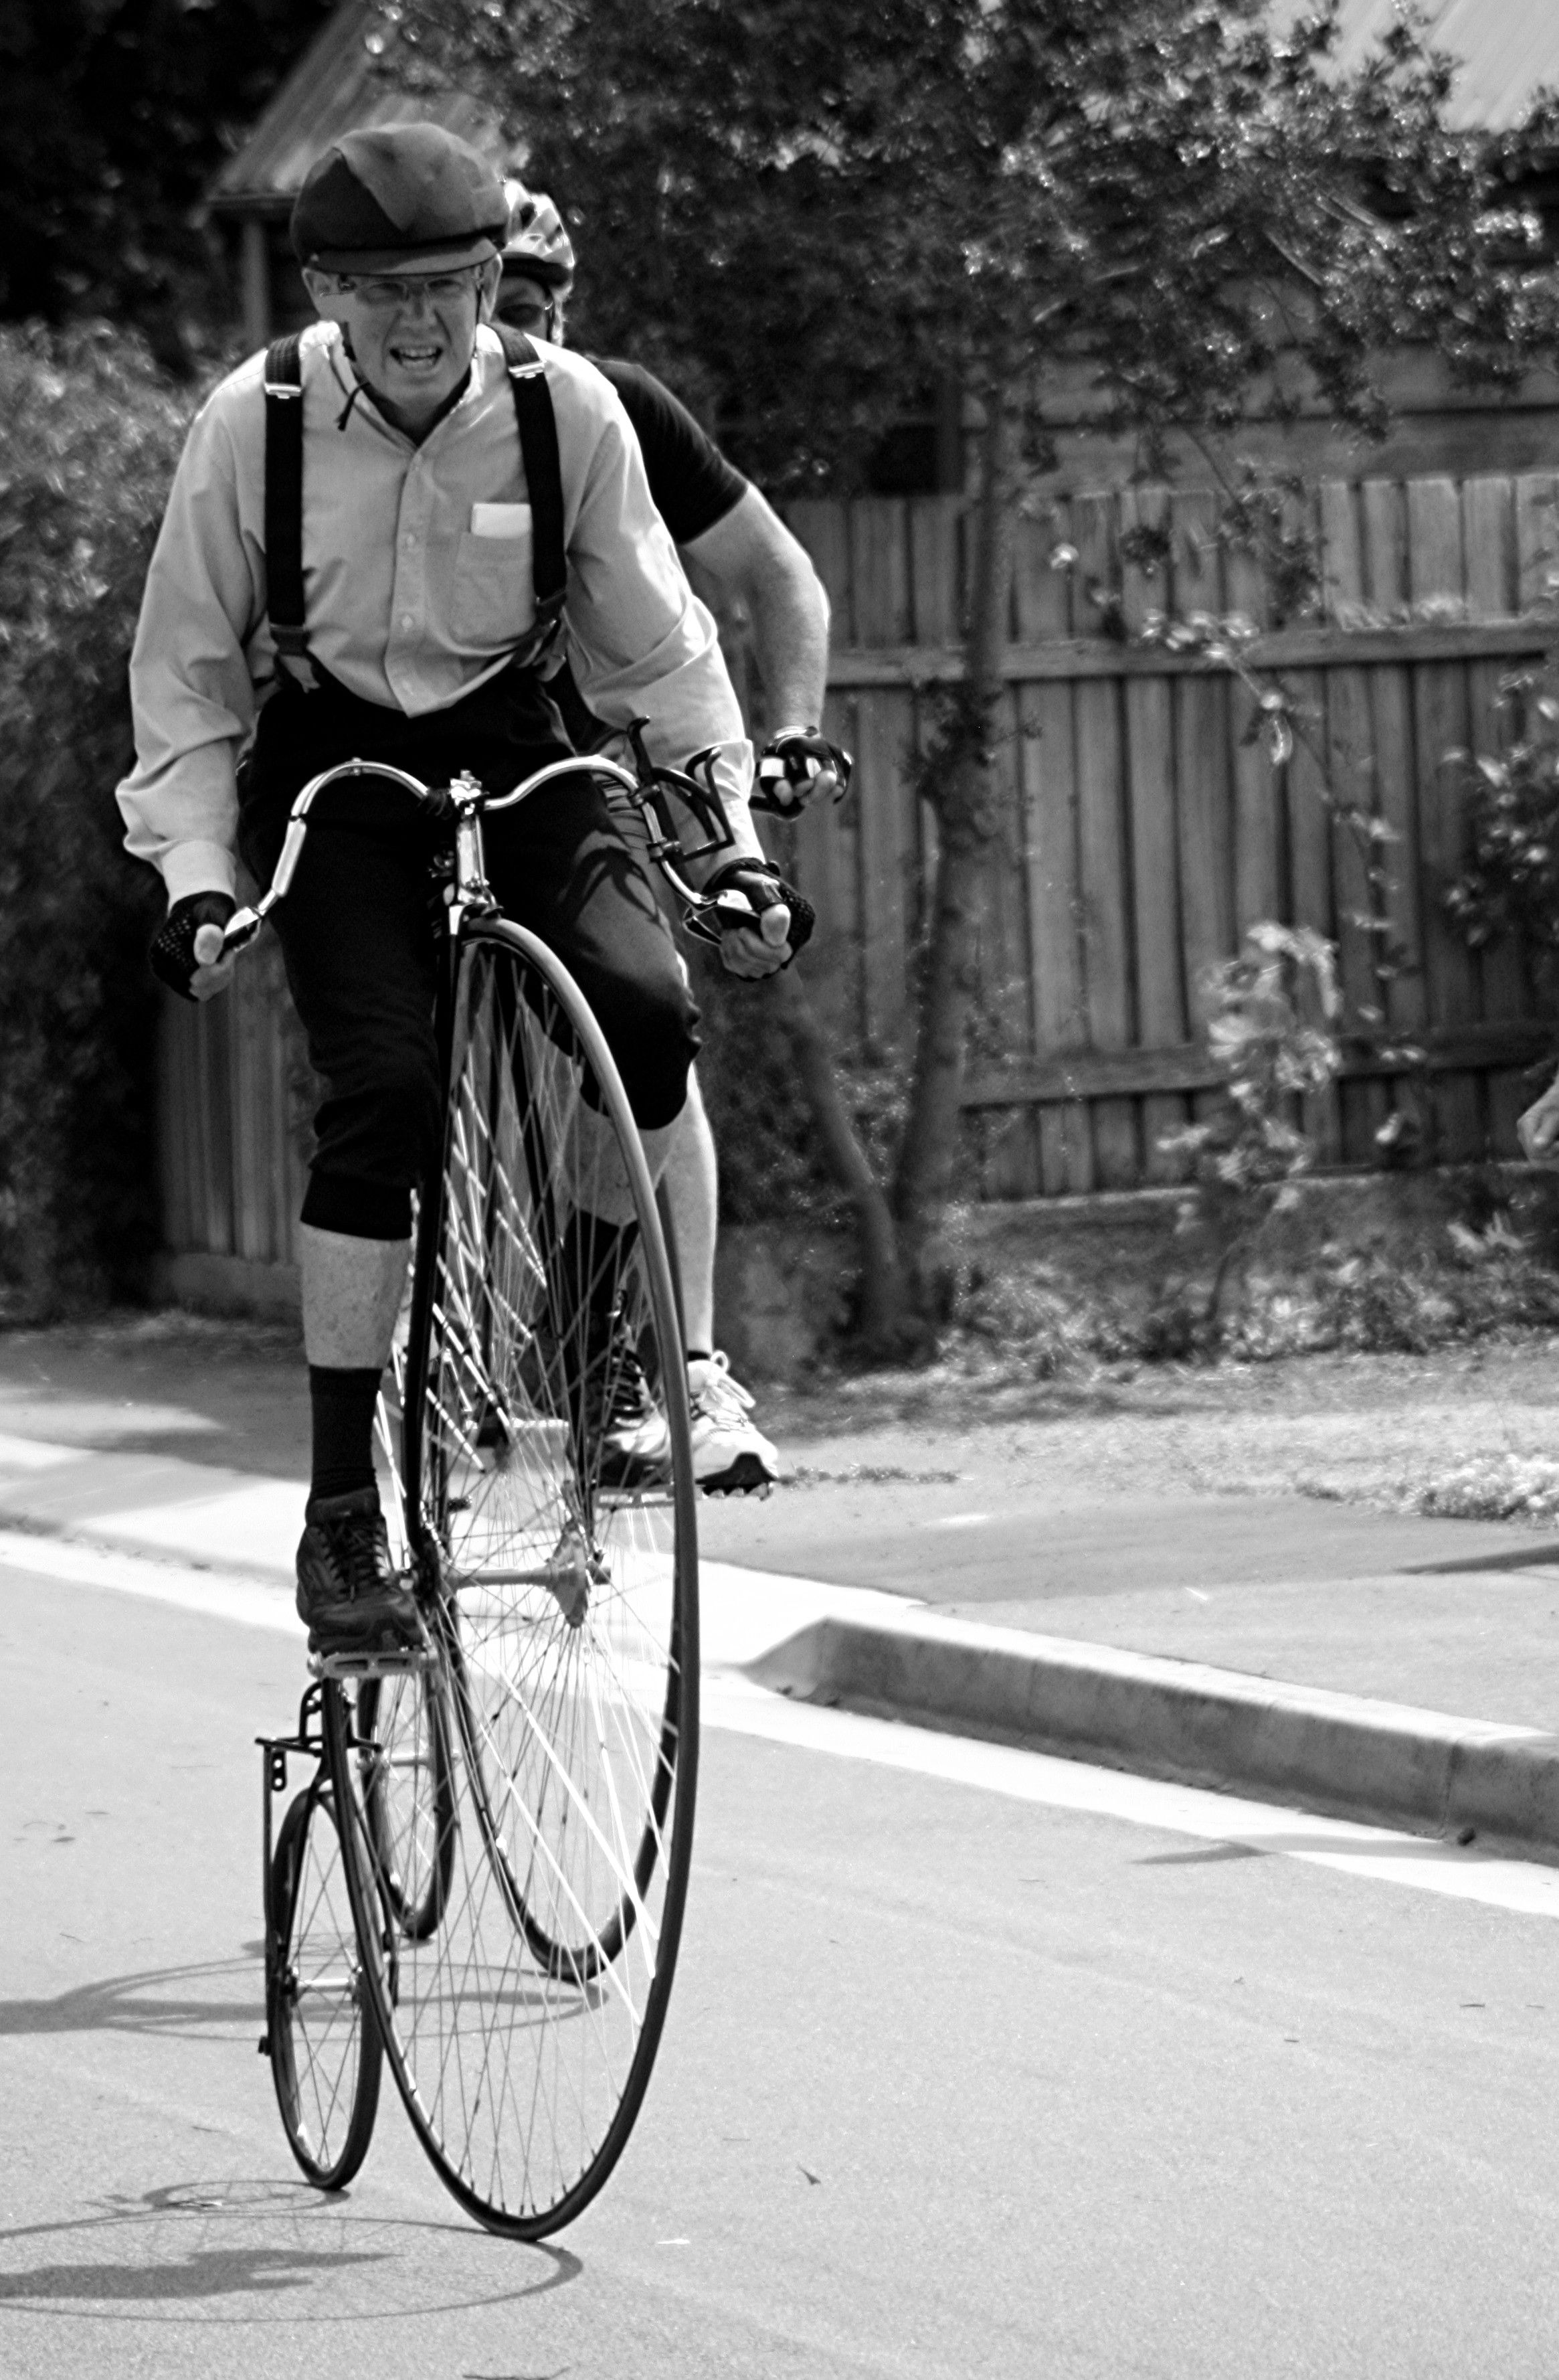 Penny farthing bycycle, veteran riding in full costume of